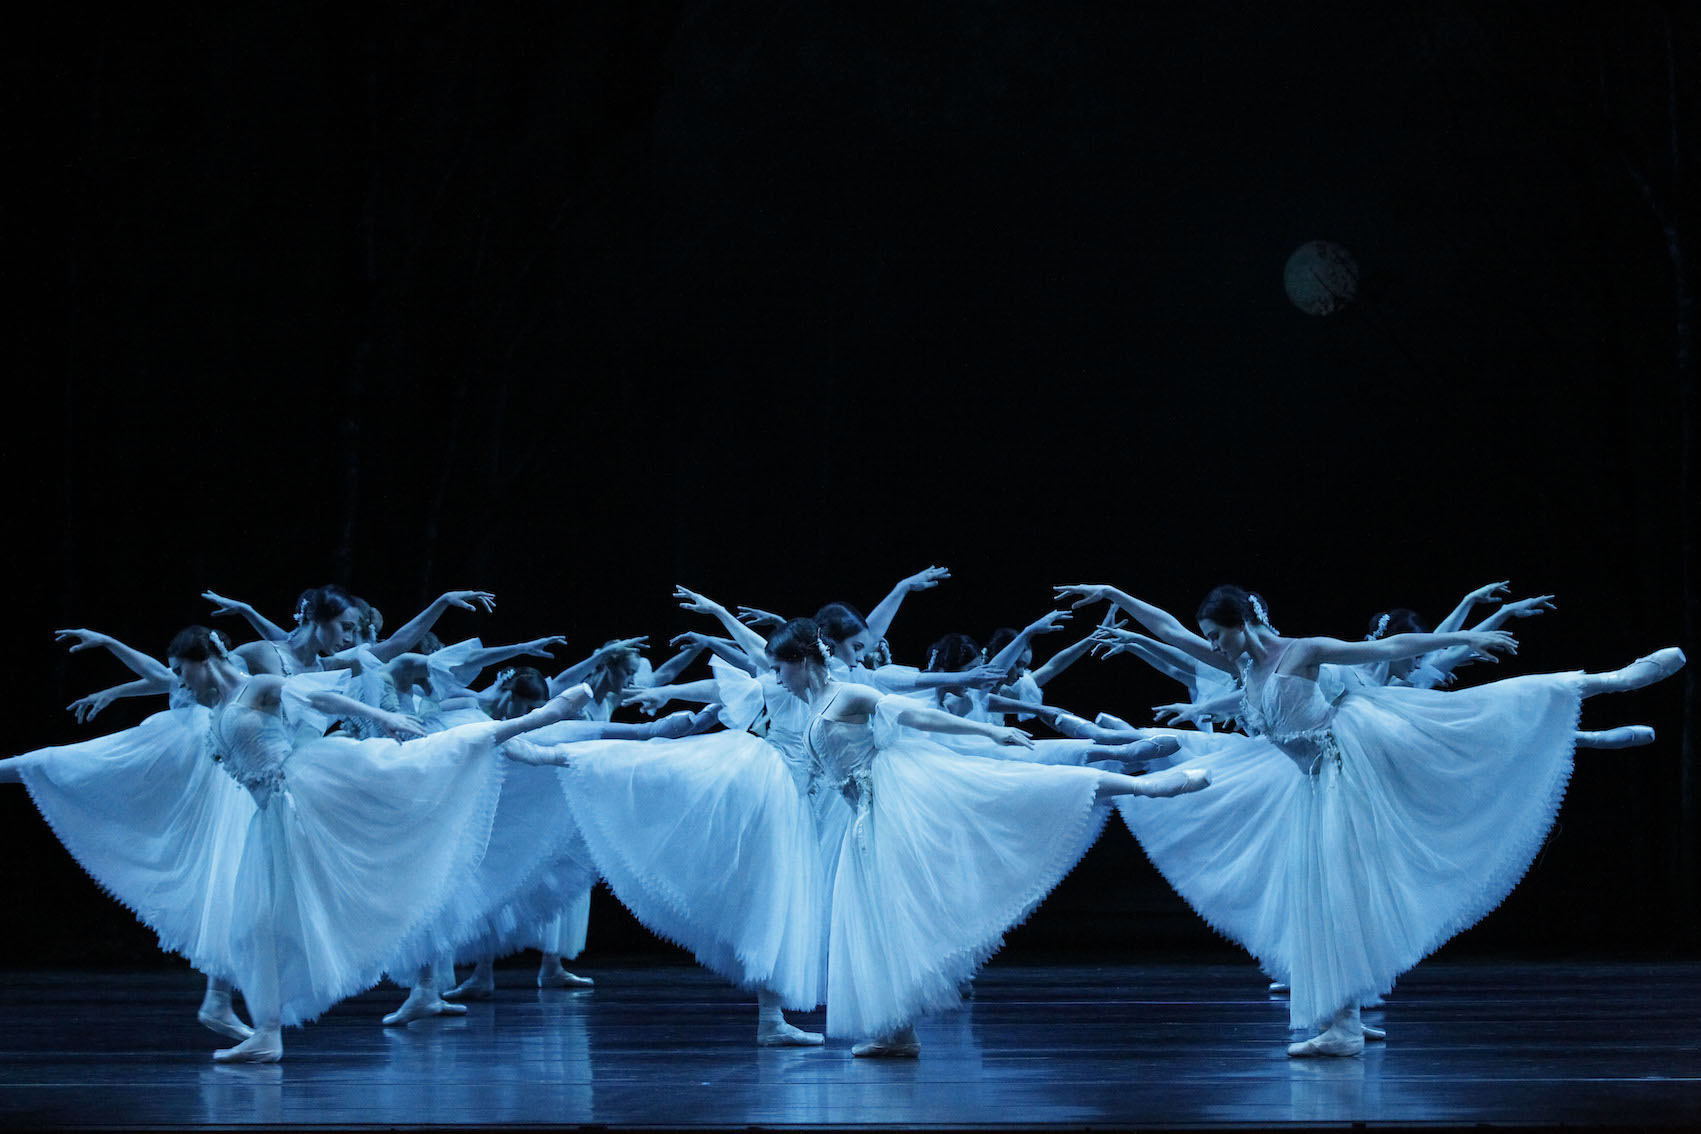 ballet and giselle A treasured romantic ballet love, betrayal and forgiveness are paired with coveted virtuoso roles this haunting and tender classic tells the story of the promise and tragedy of young love.